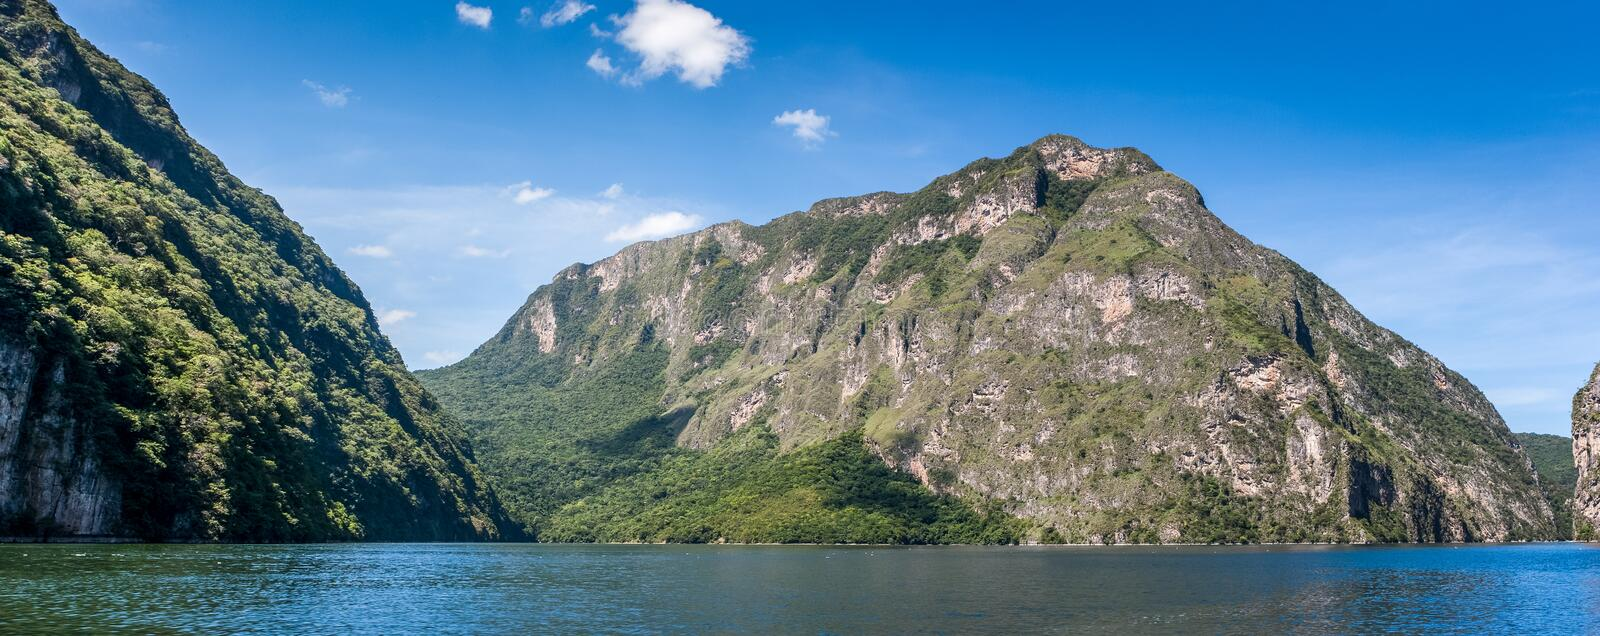 Canyon del Sumidero with blue sky, Chiapas, Mexico. Panoramic view of the Canyon del Sumidero, Chiapas, Mexico stock photo